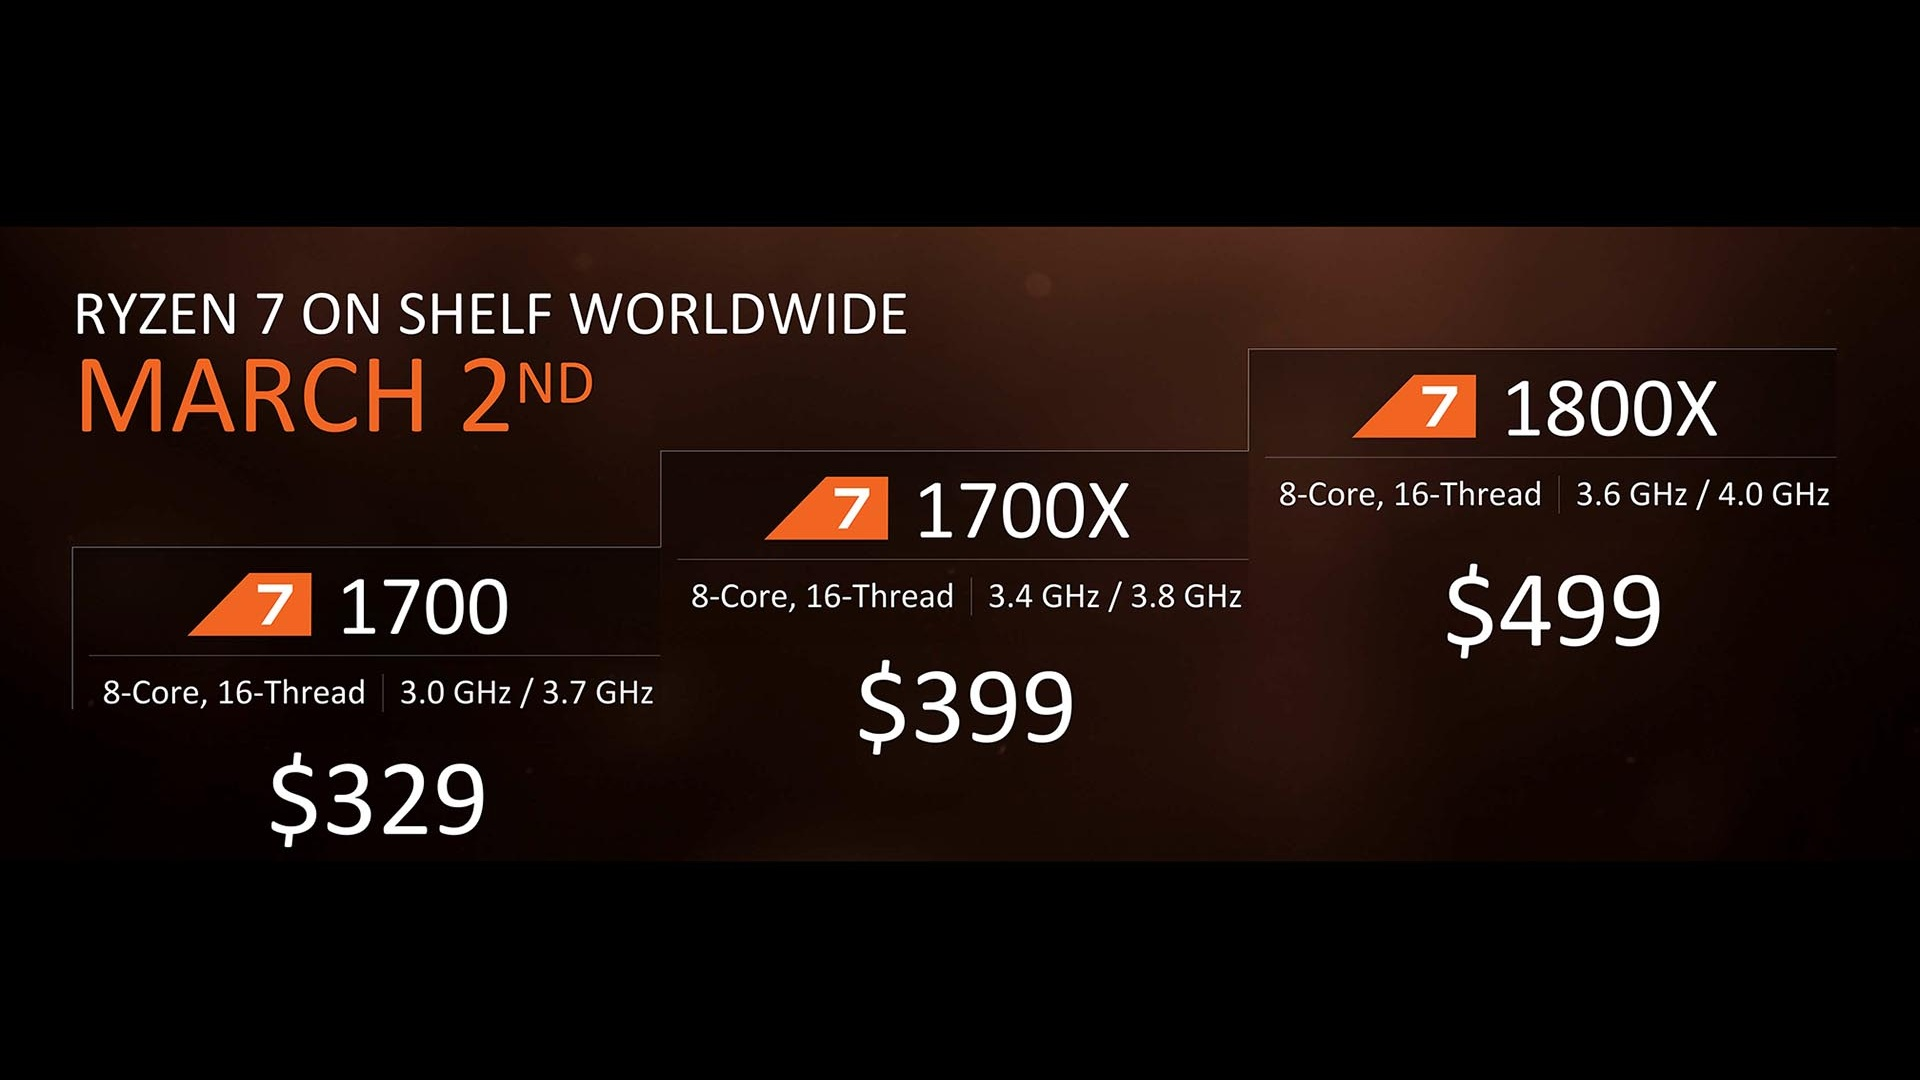 Amd Ryzen 7 1700 Overclocked To 4ghz On All 8 Cores Provides